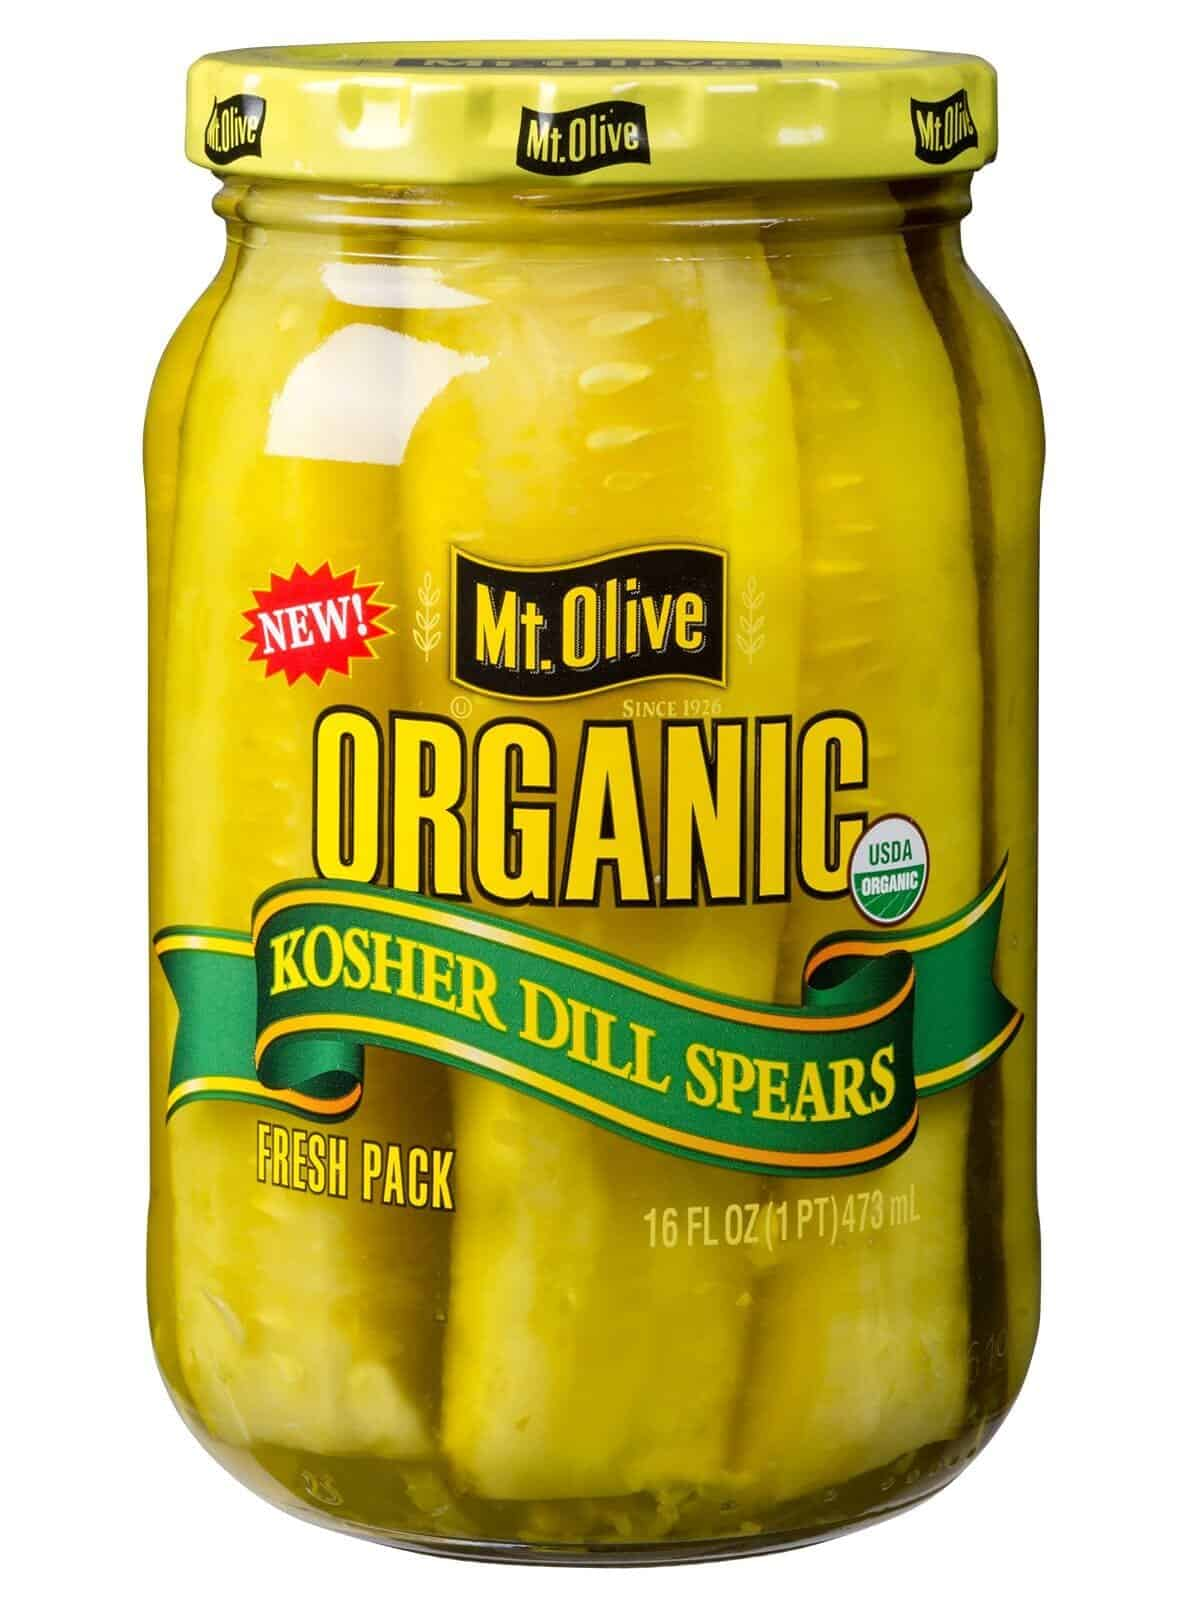 Organic Kosher Dill Spears Jar